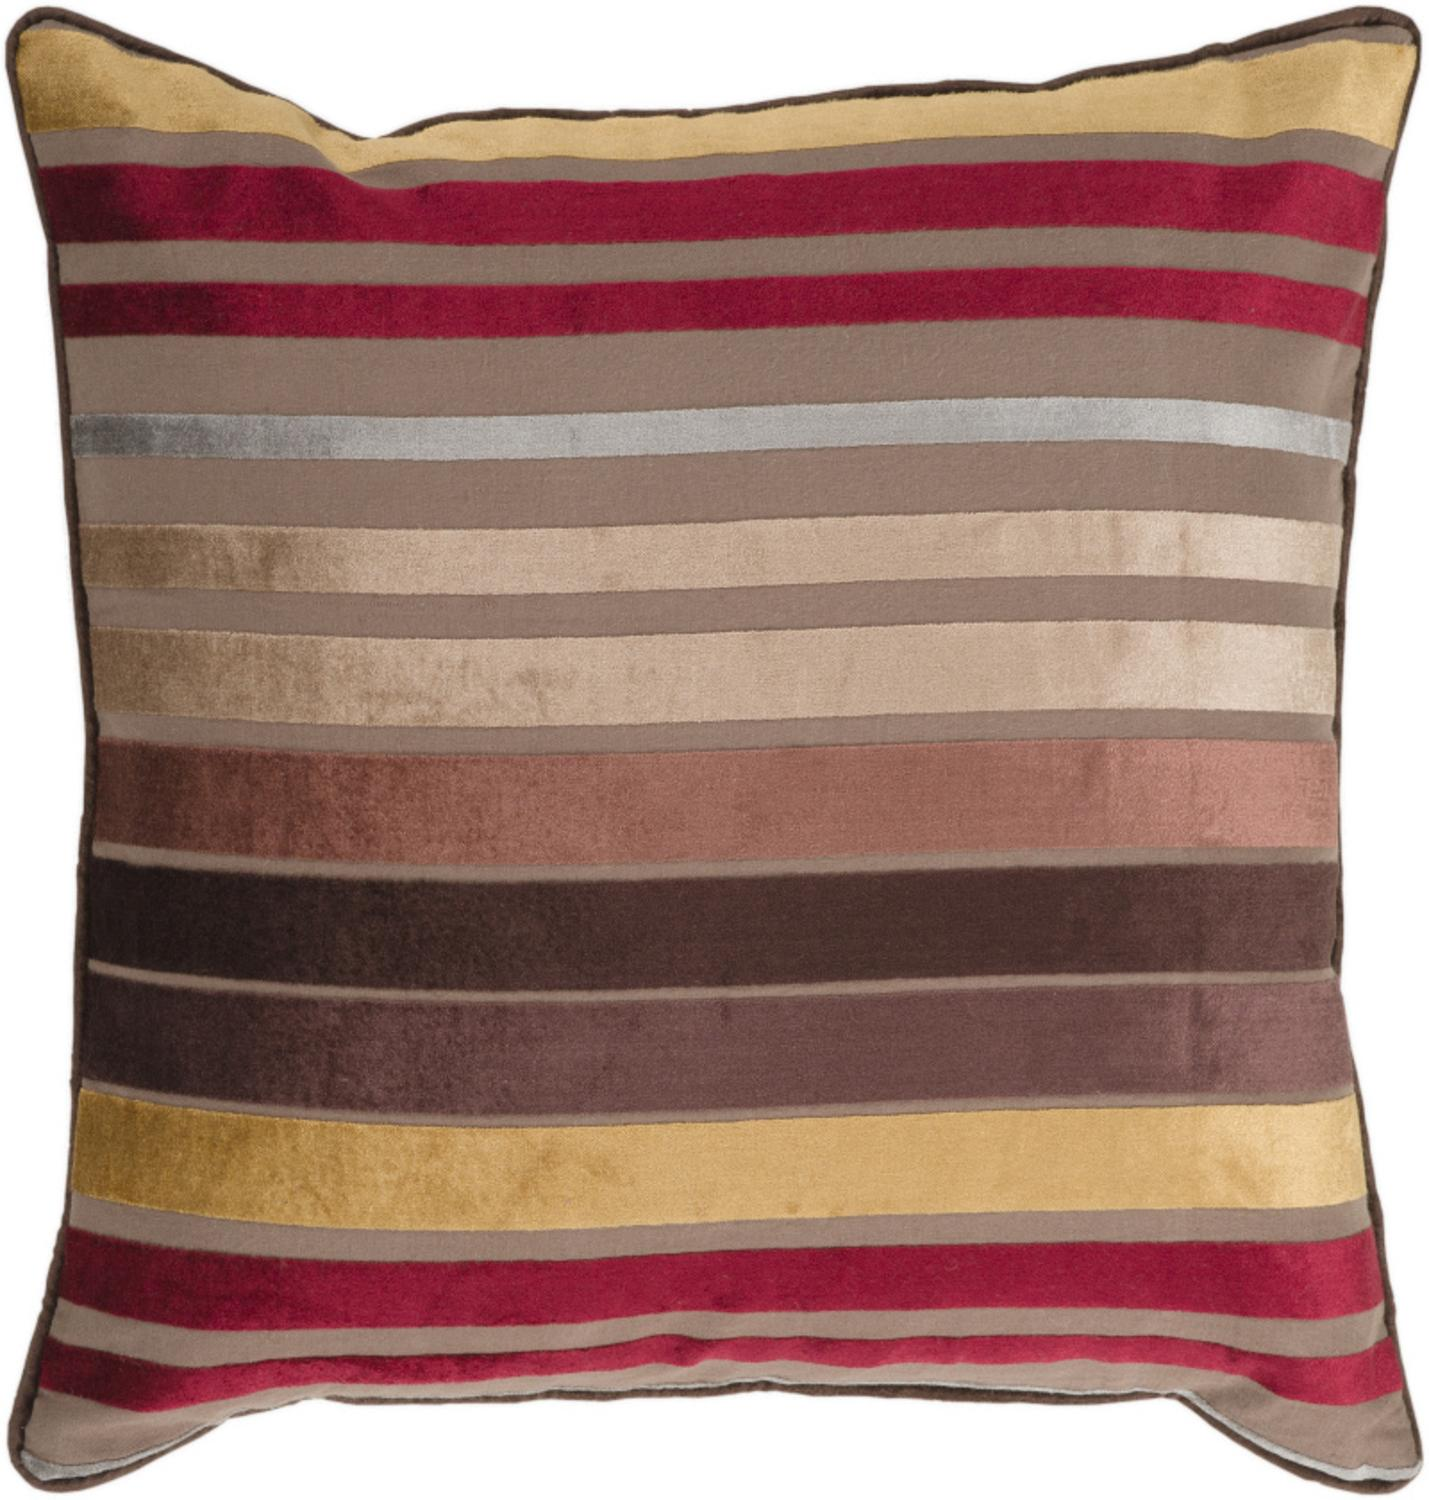 "18"" Bright and Vibrant Brown and Red Striped Decorative Down Throw Pillow"